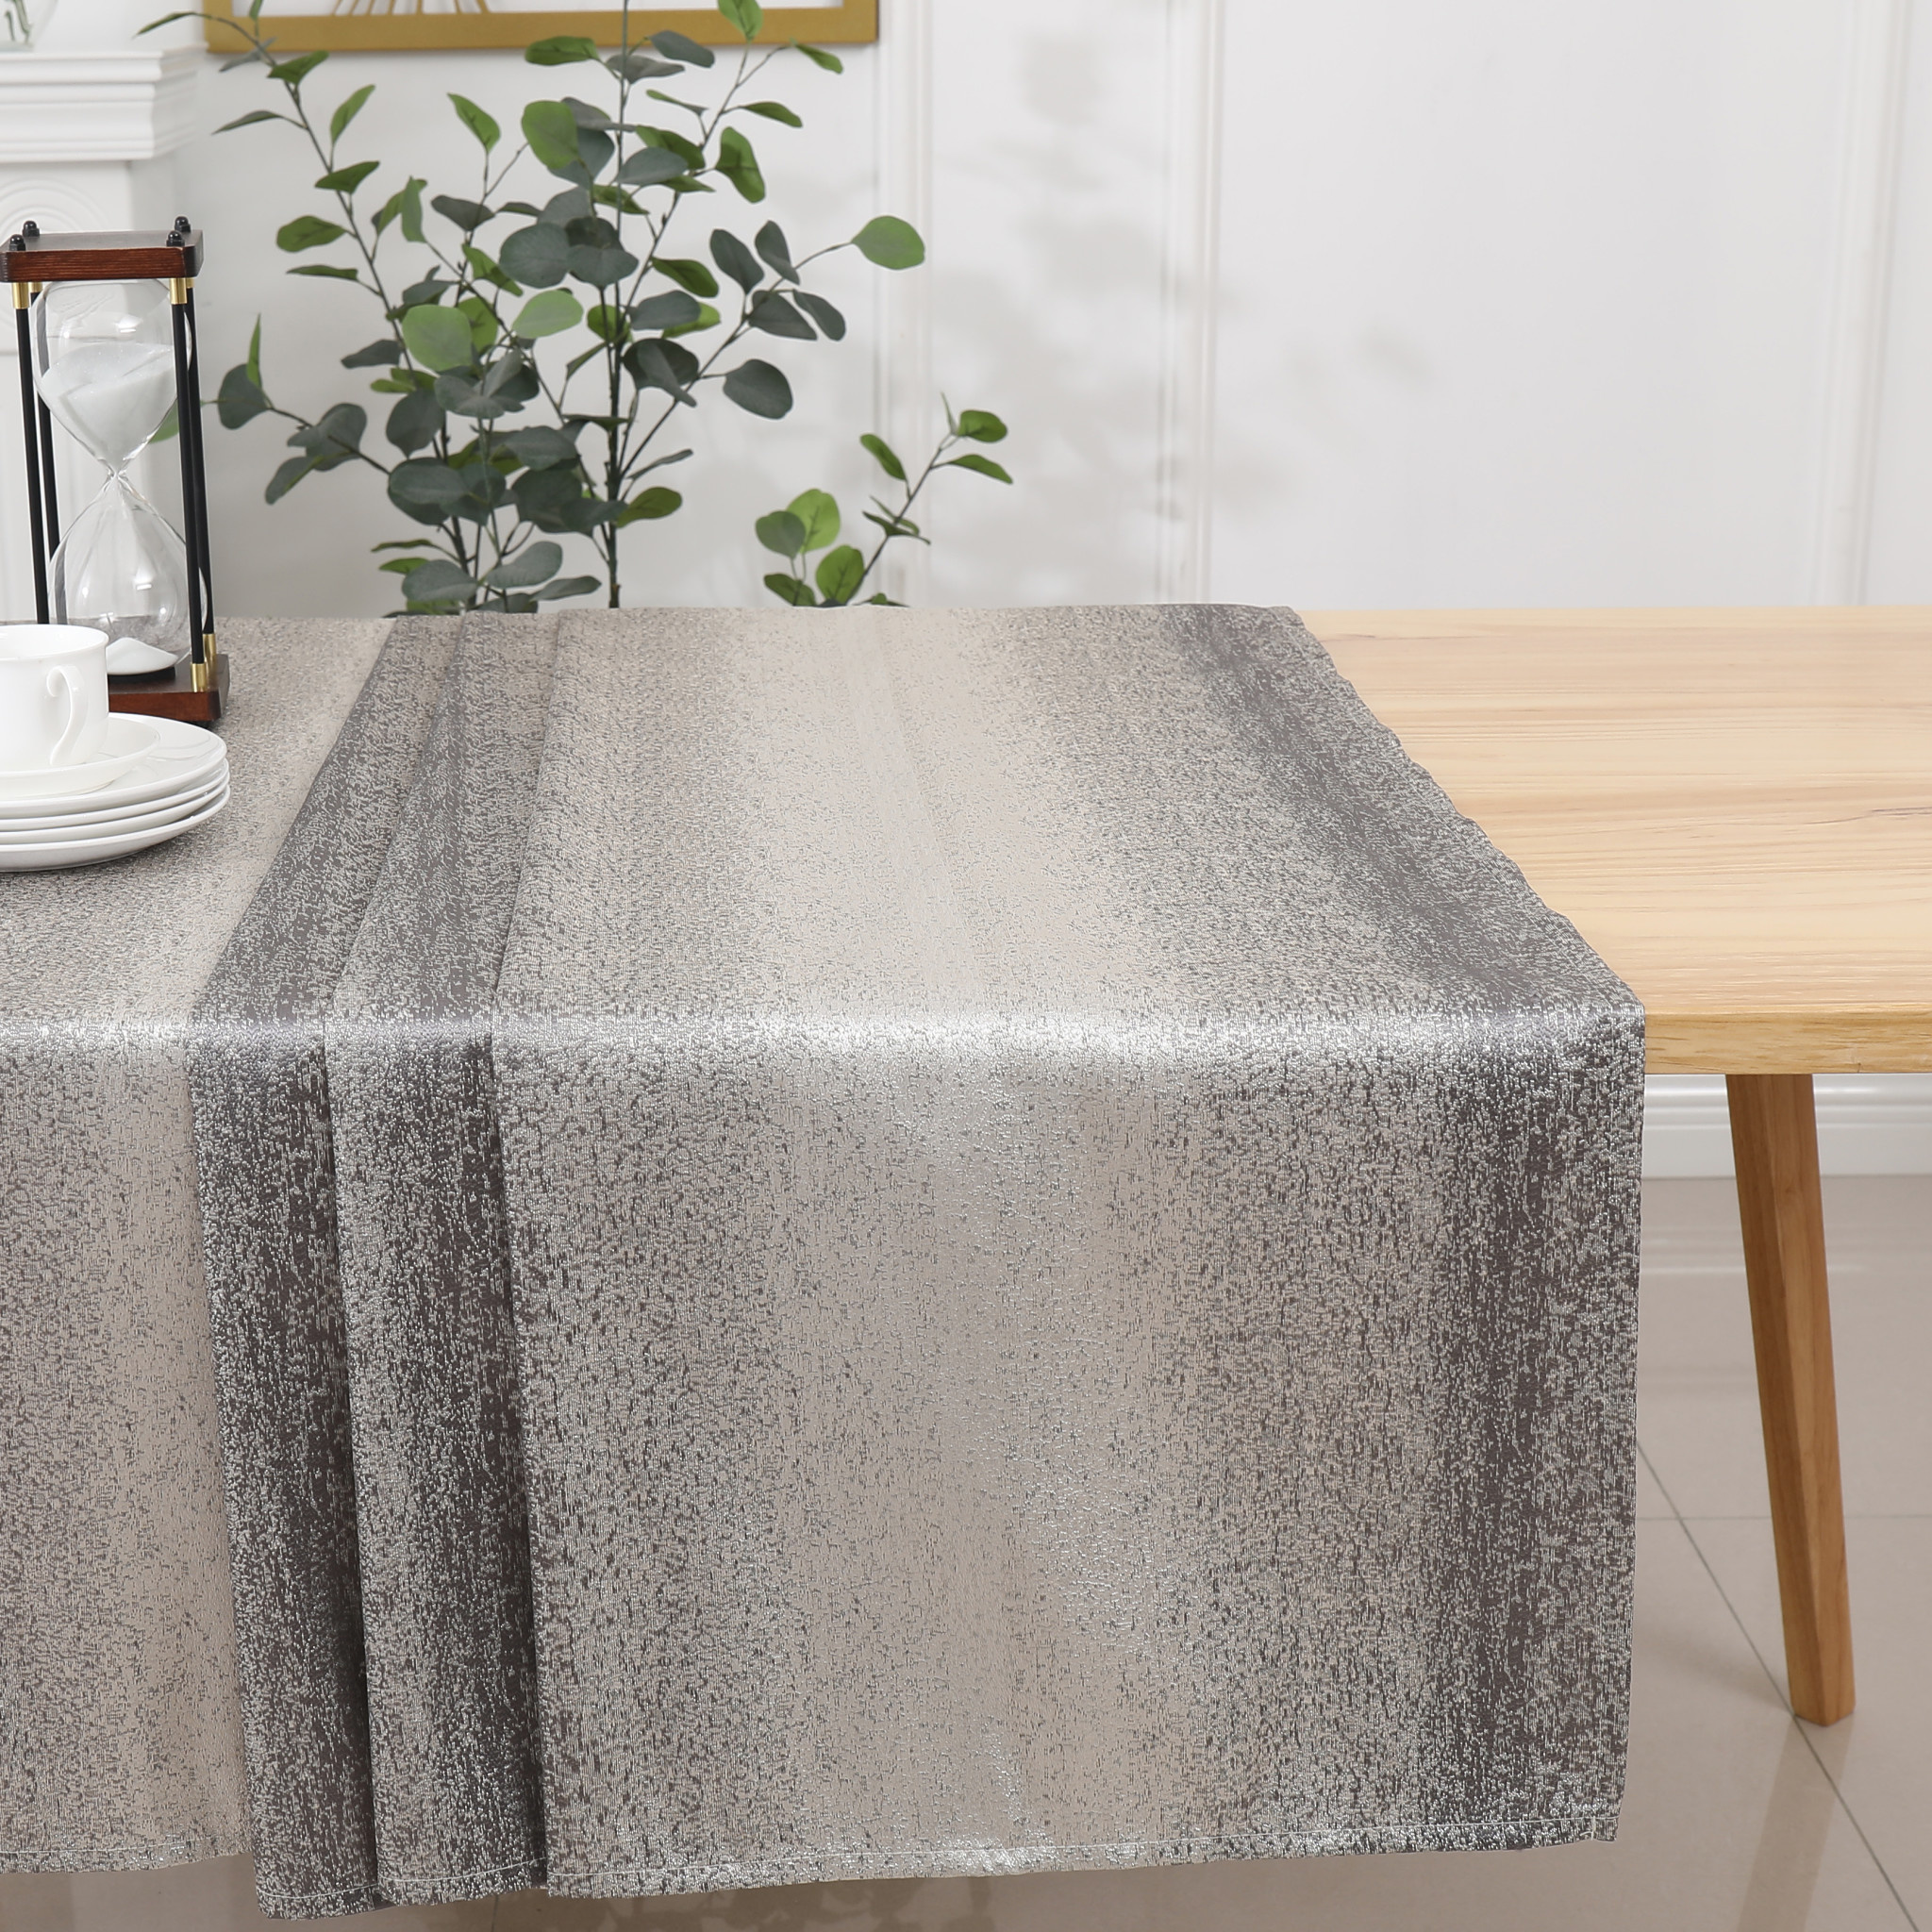 TC1202- 70 x 108 Jacquard Silver Tablecloth